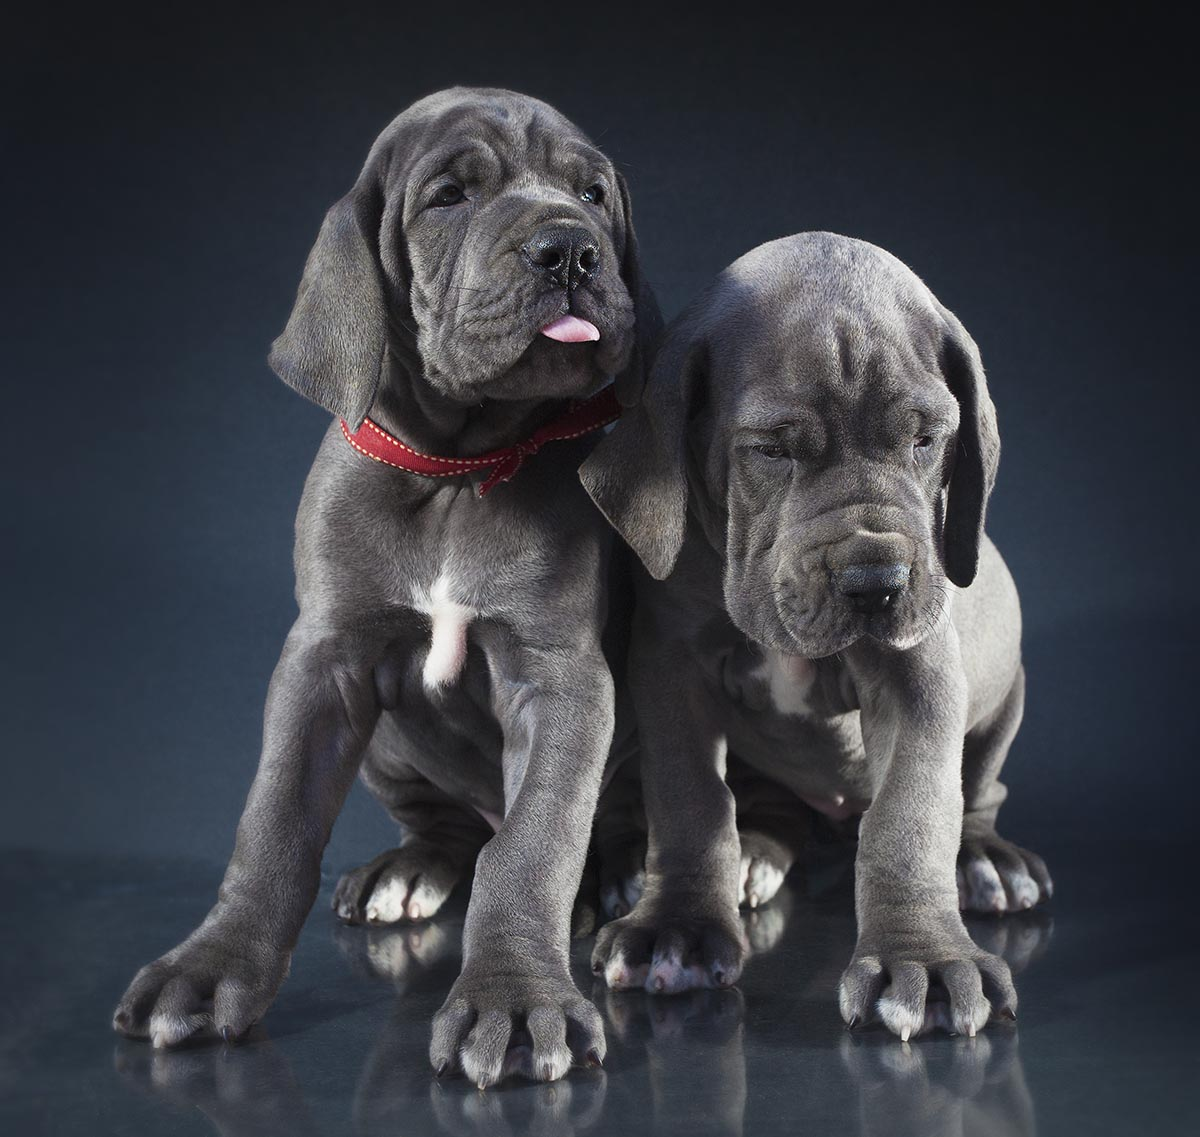 Maverick Danes, Guy J. Sagi, puppy sibling rivalry, Great Dane puppies, strobist photography